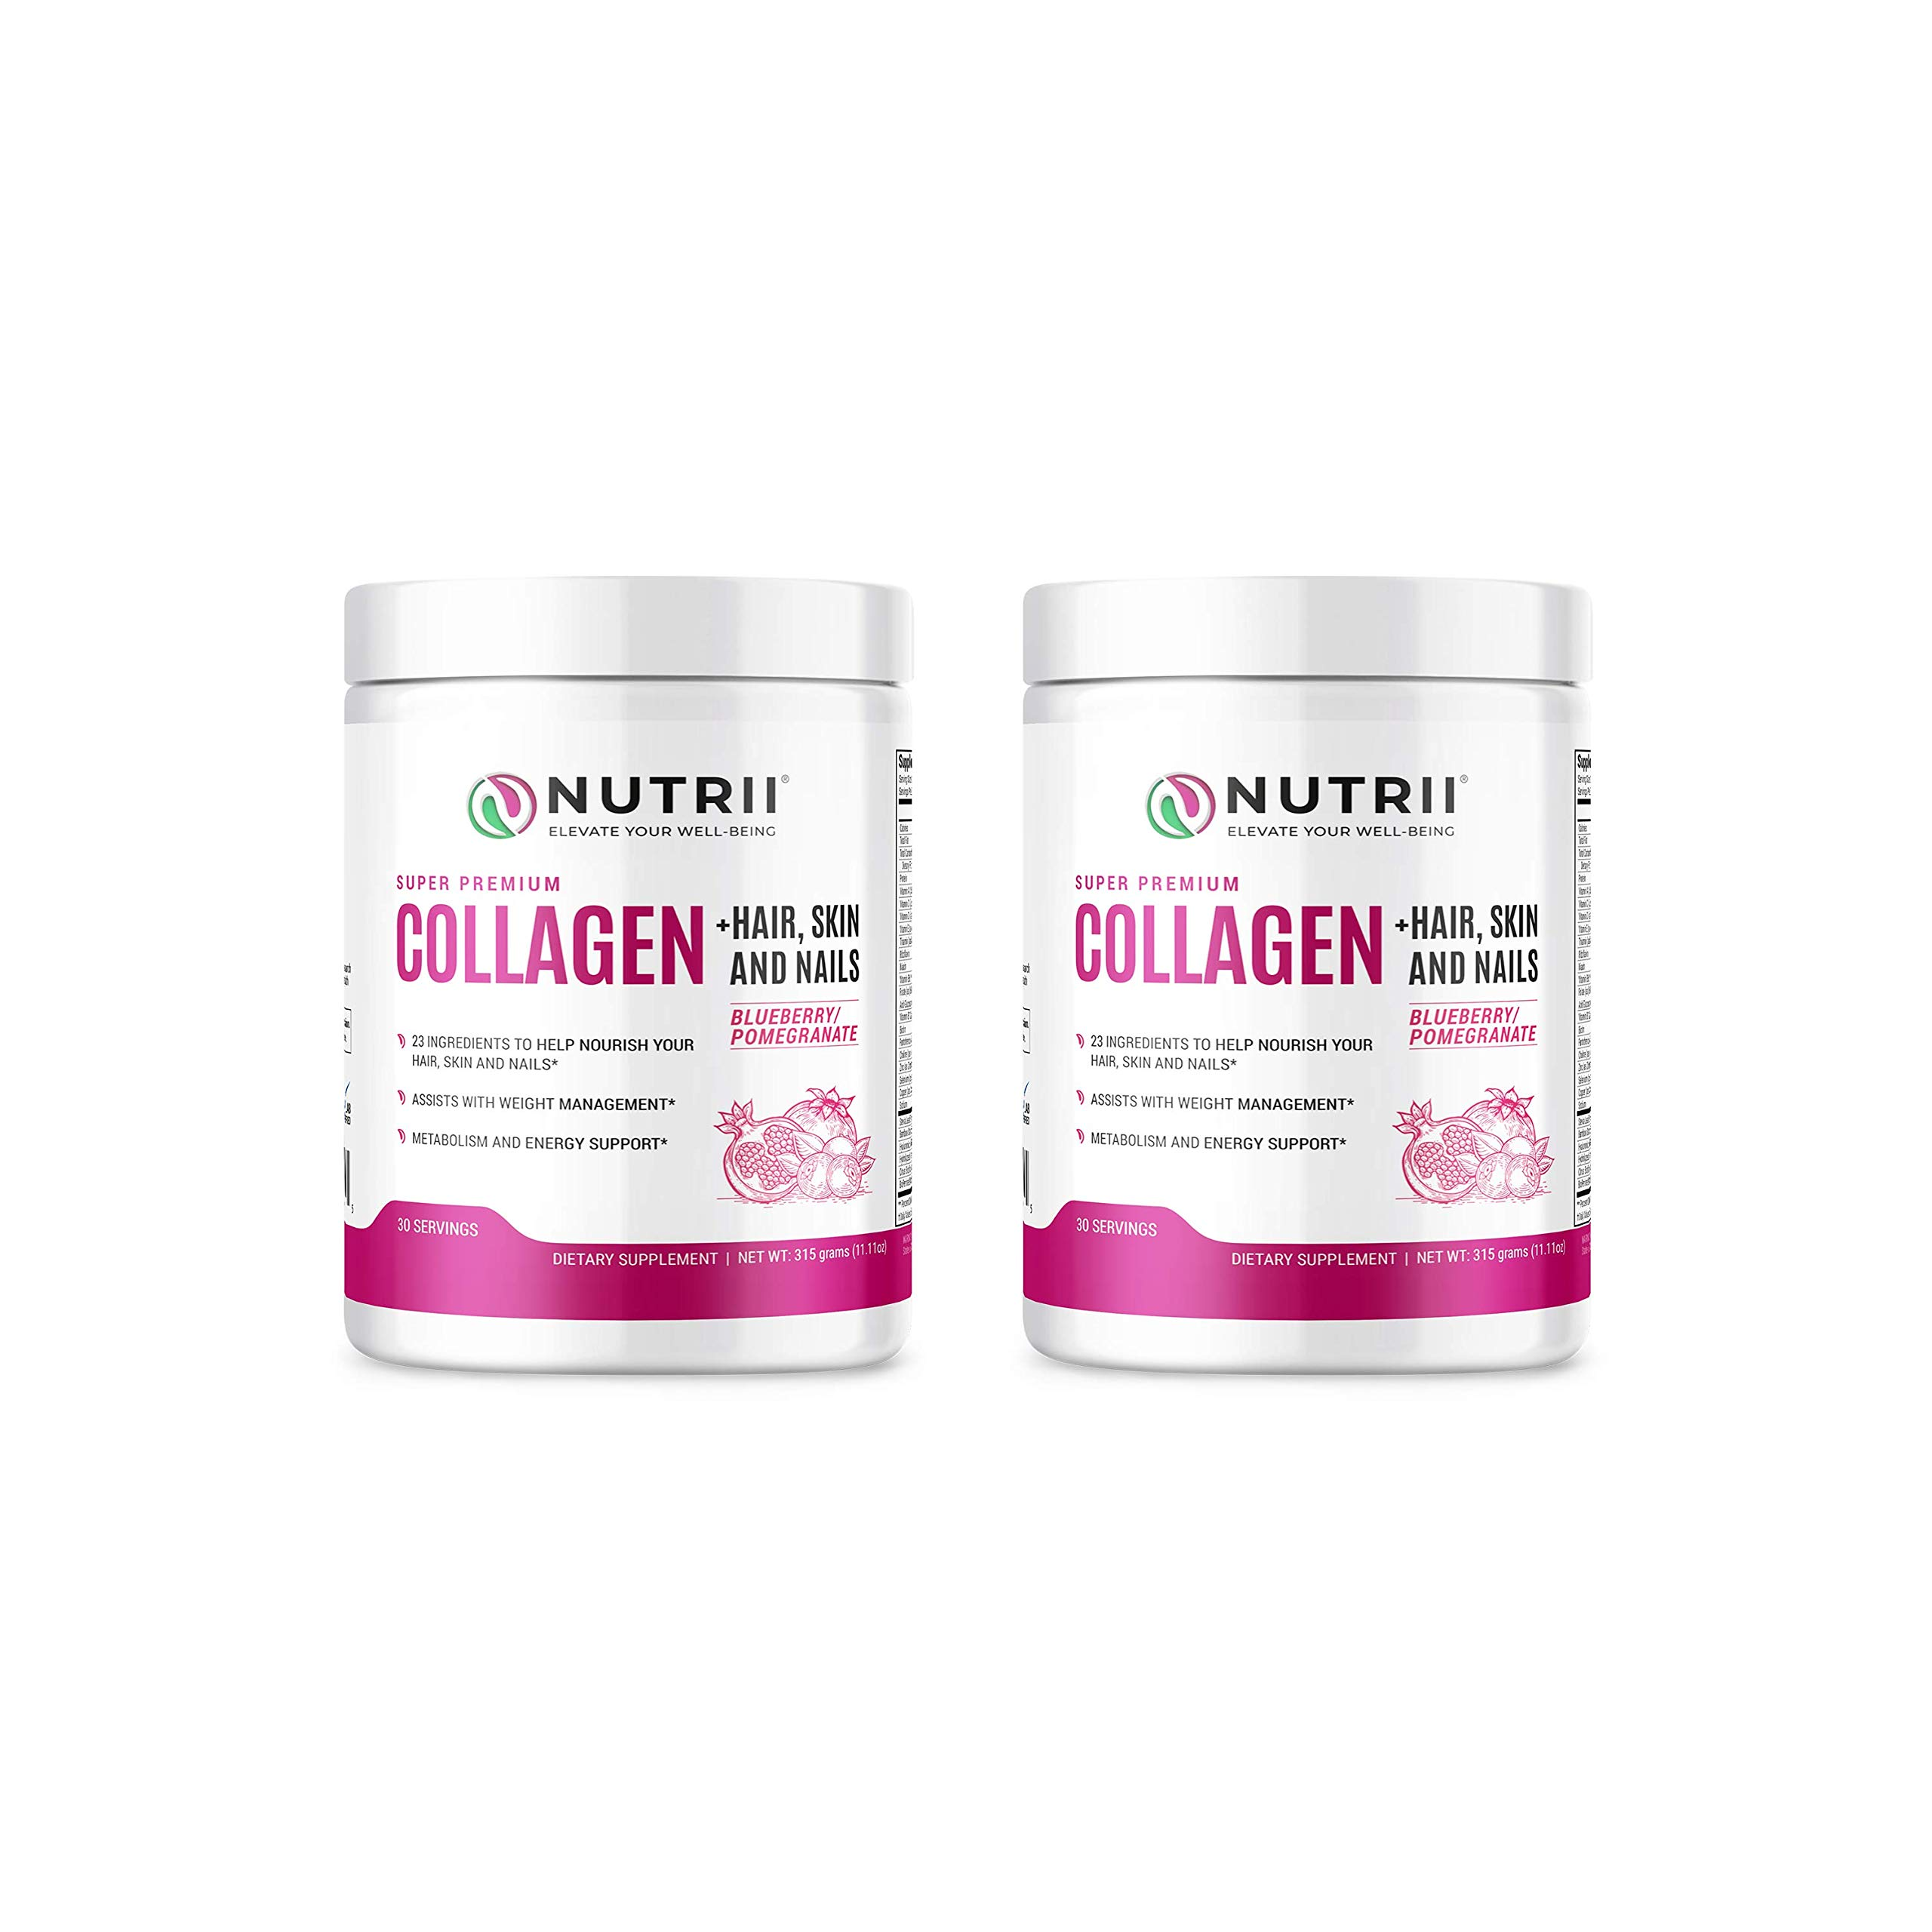 Nutrii Grass-Fed Hydrolyzed Collagen Peptides Protein Powder, Anti-Aging Skin, Joint, Hair, Skin, Supplement, Build Lean Muscle, Restore Natural Energy, 11.1 oz, 30 Servings, Blueberry-Pom (2 Pack)